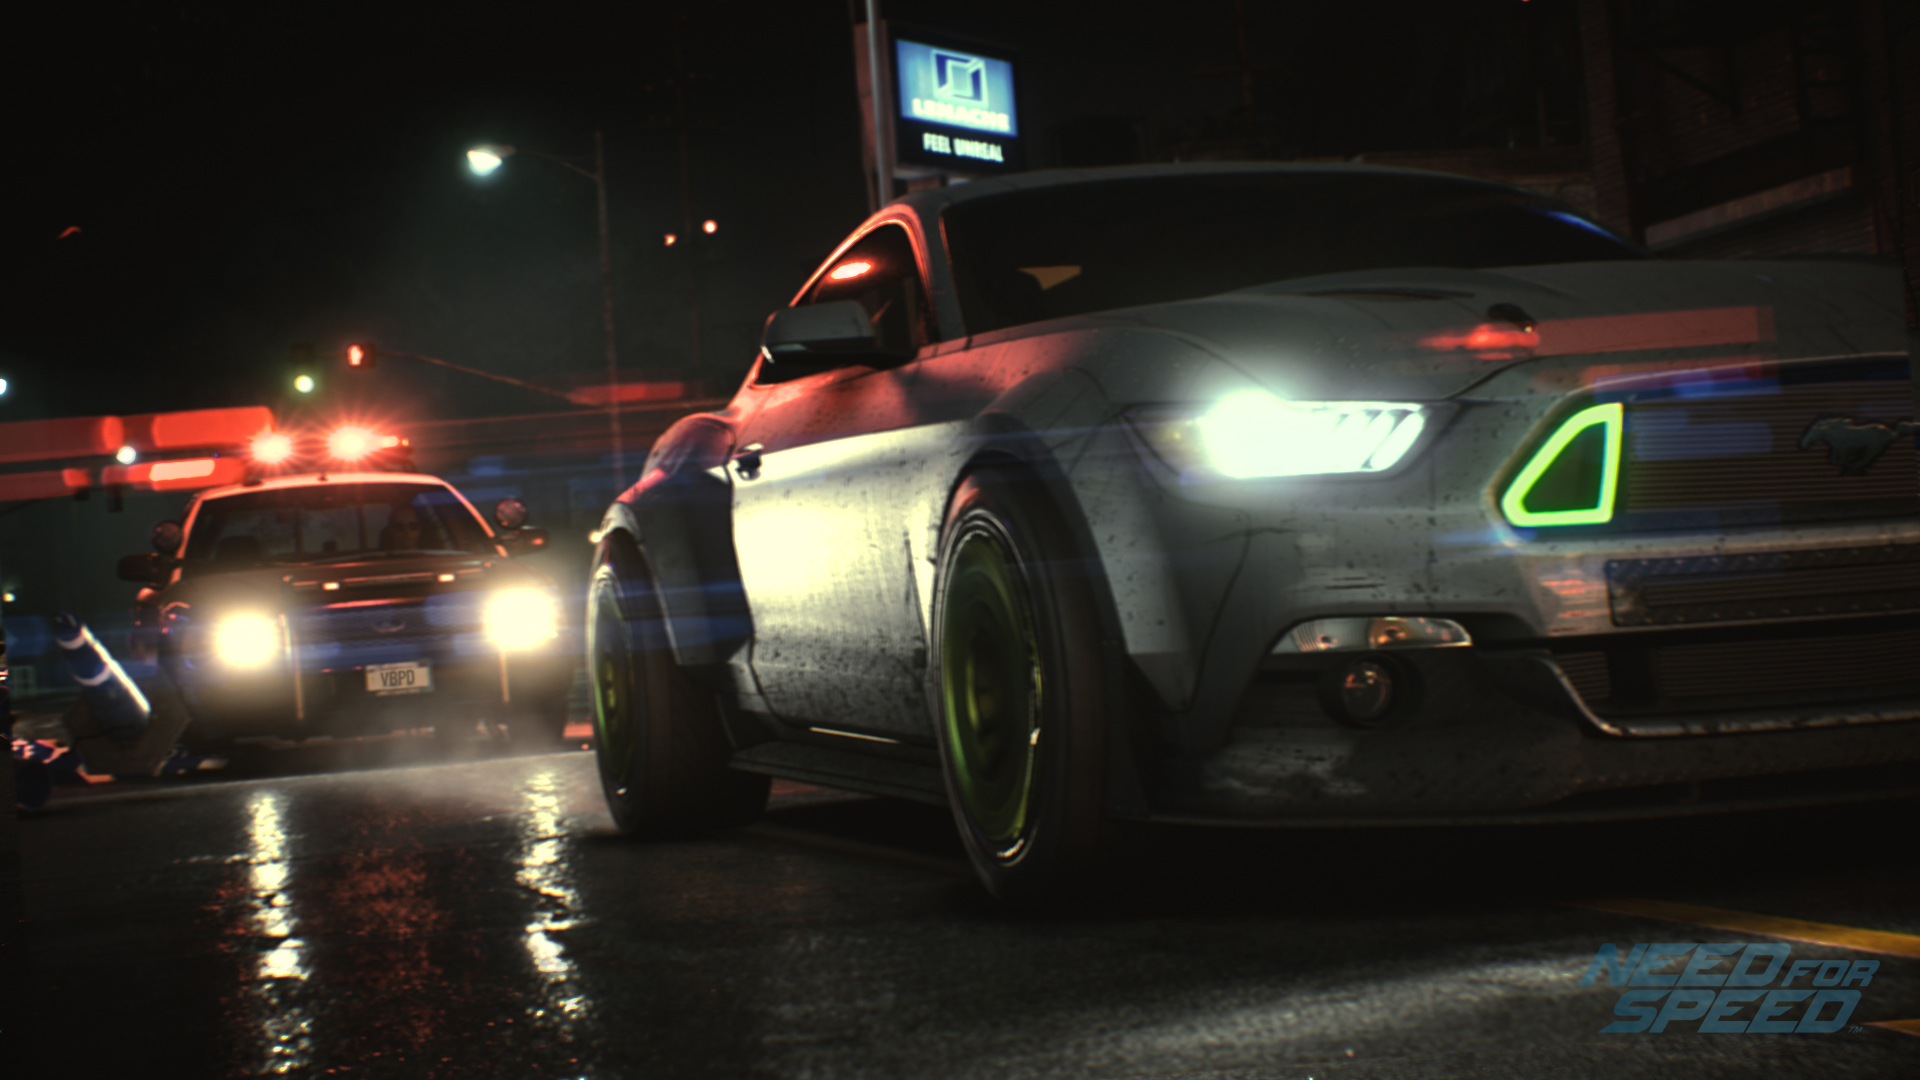 2885784-needforspeed_screen_04